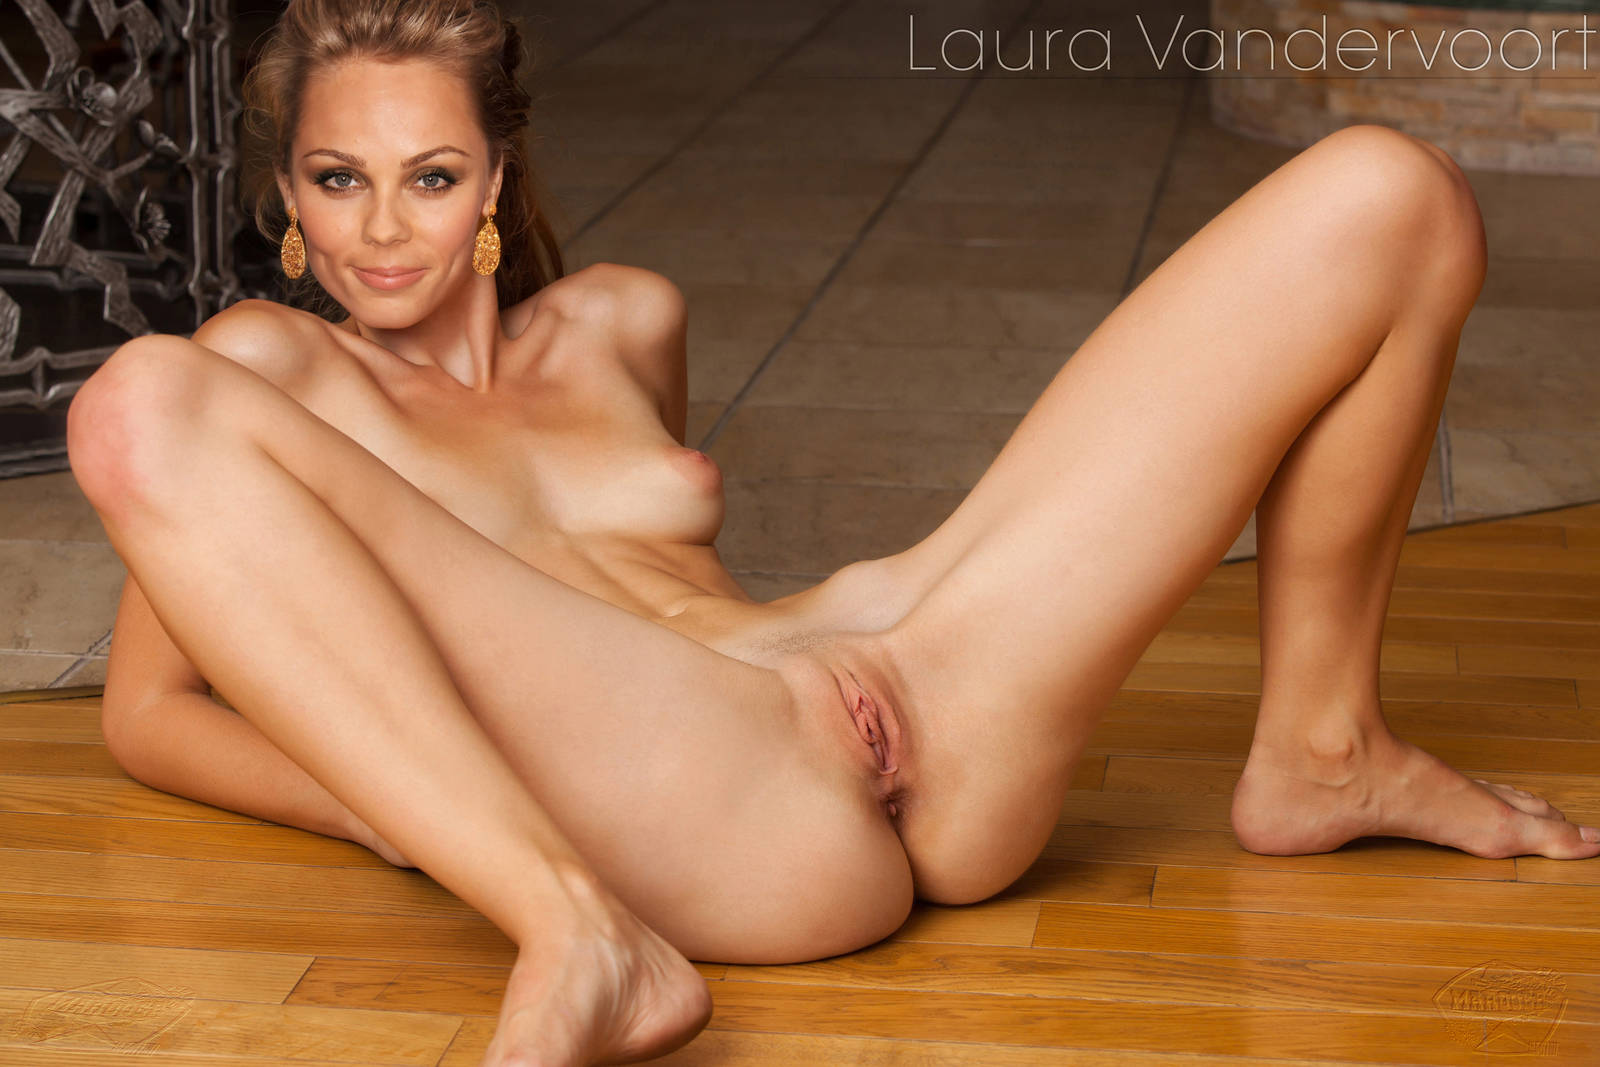 fake nudes of laura vandervoort